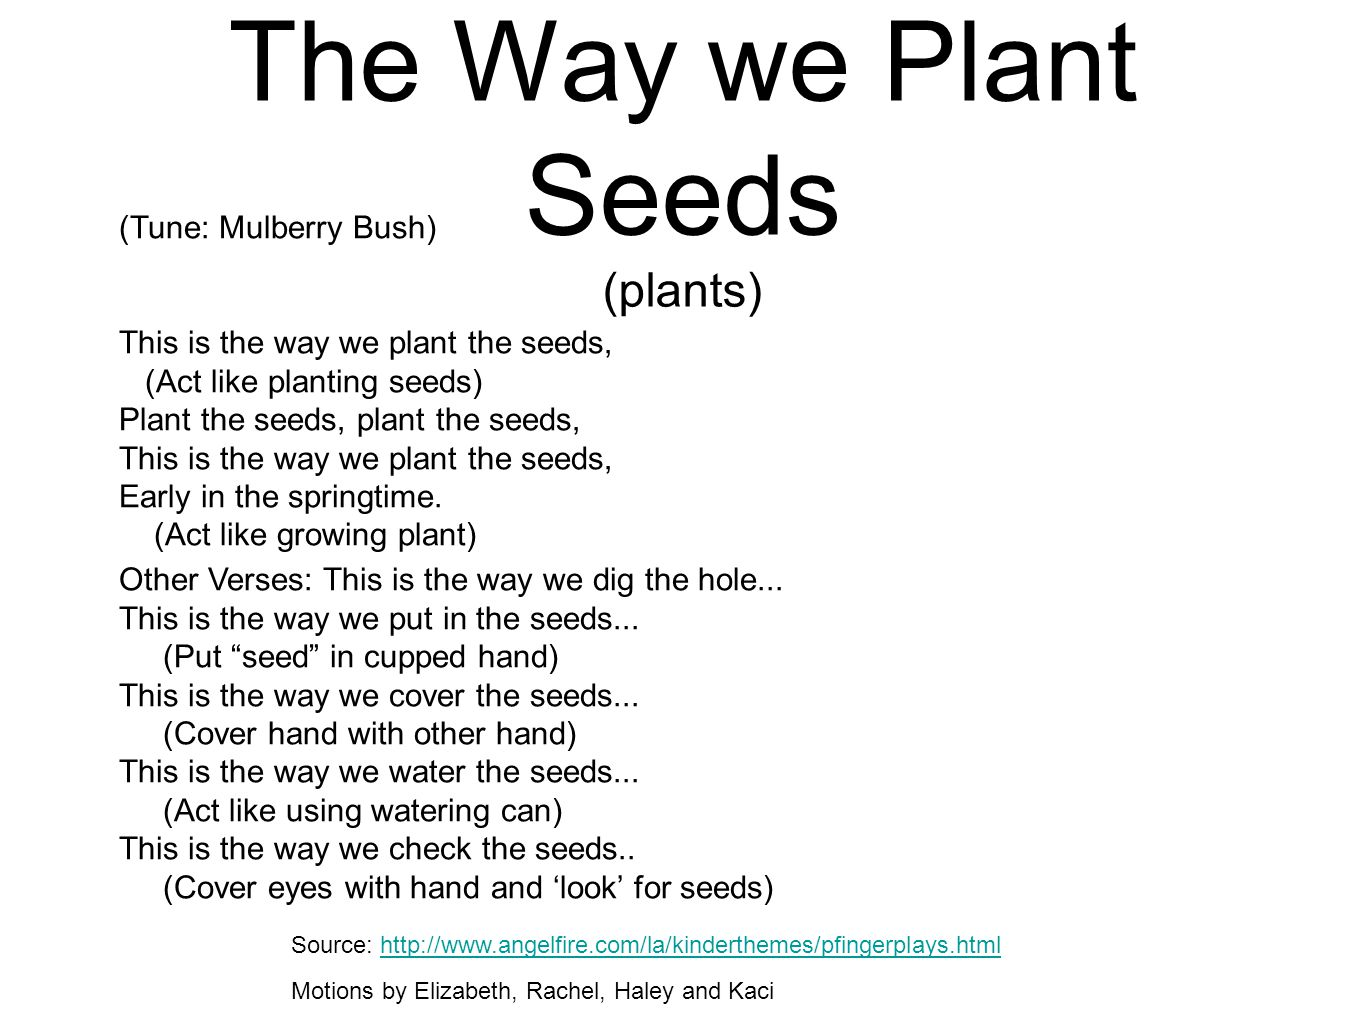 The Way we Plant Seeds (plants)